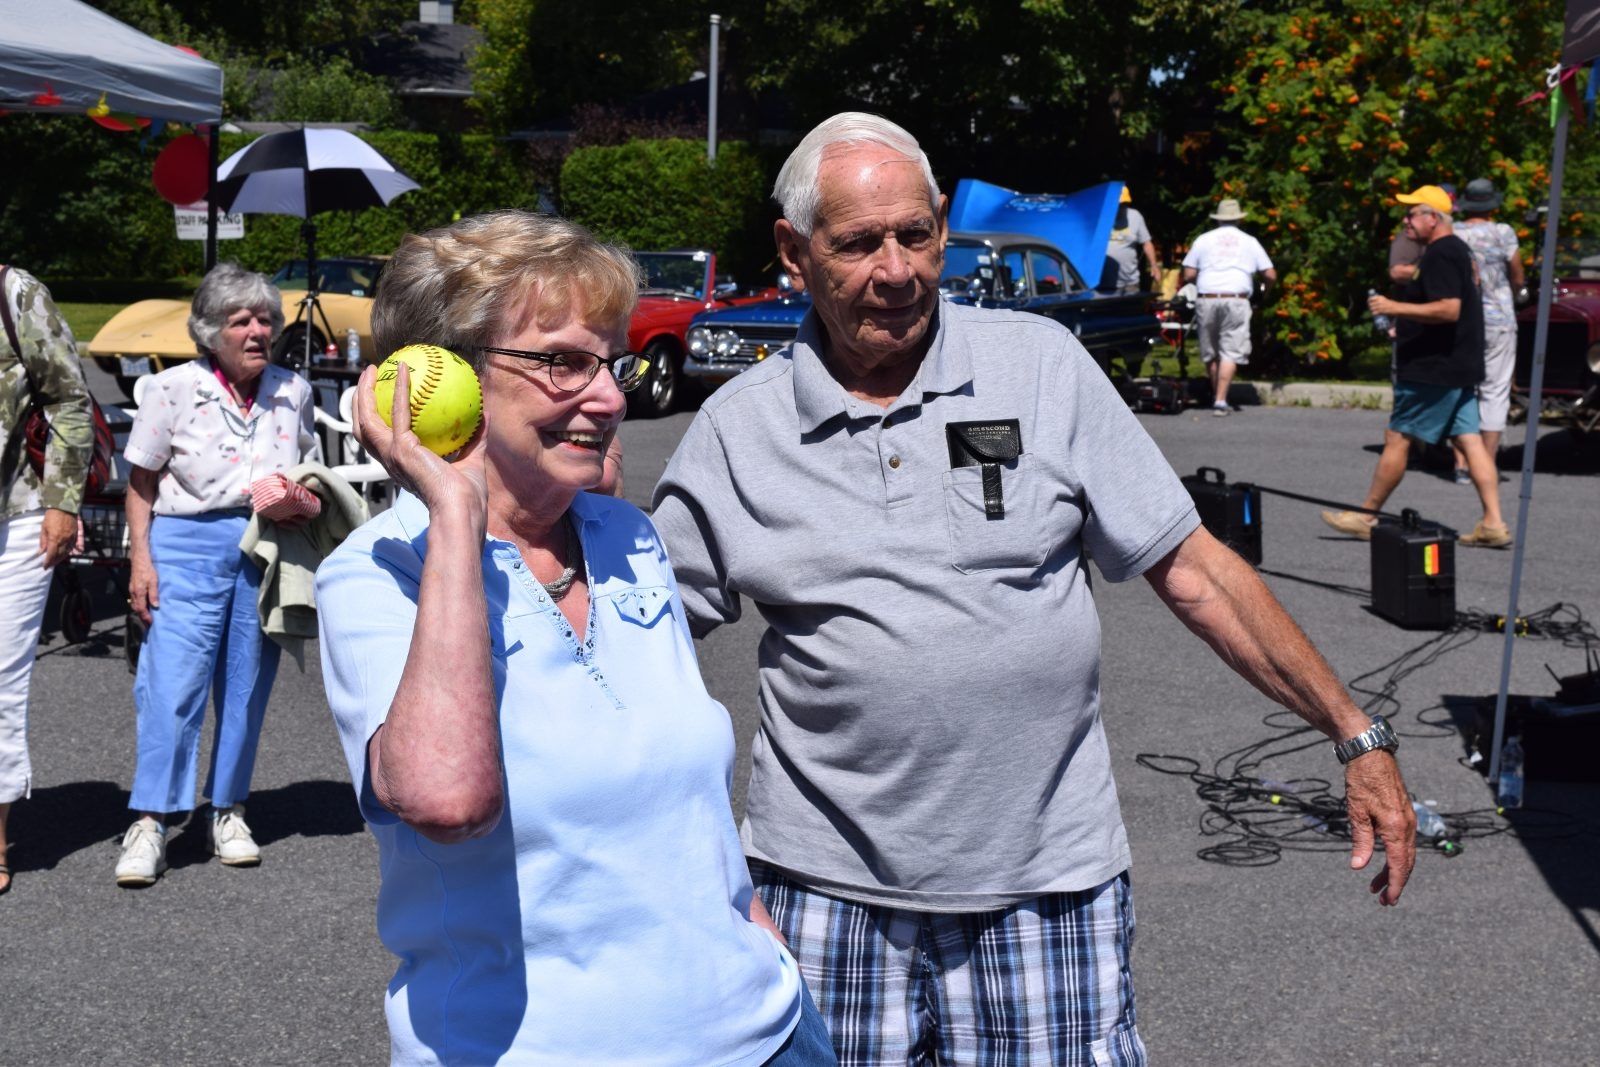 Summer fun at McConnell Manor Carnival Day